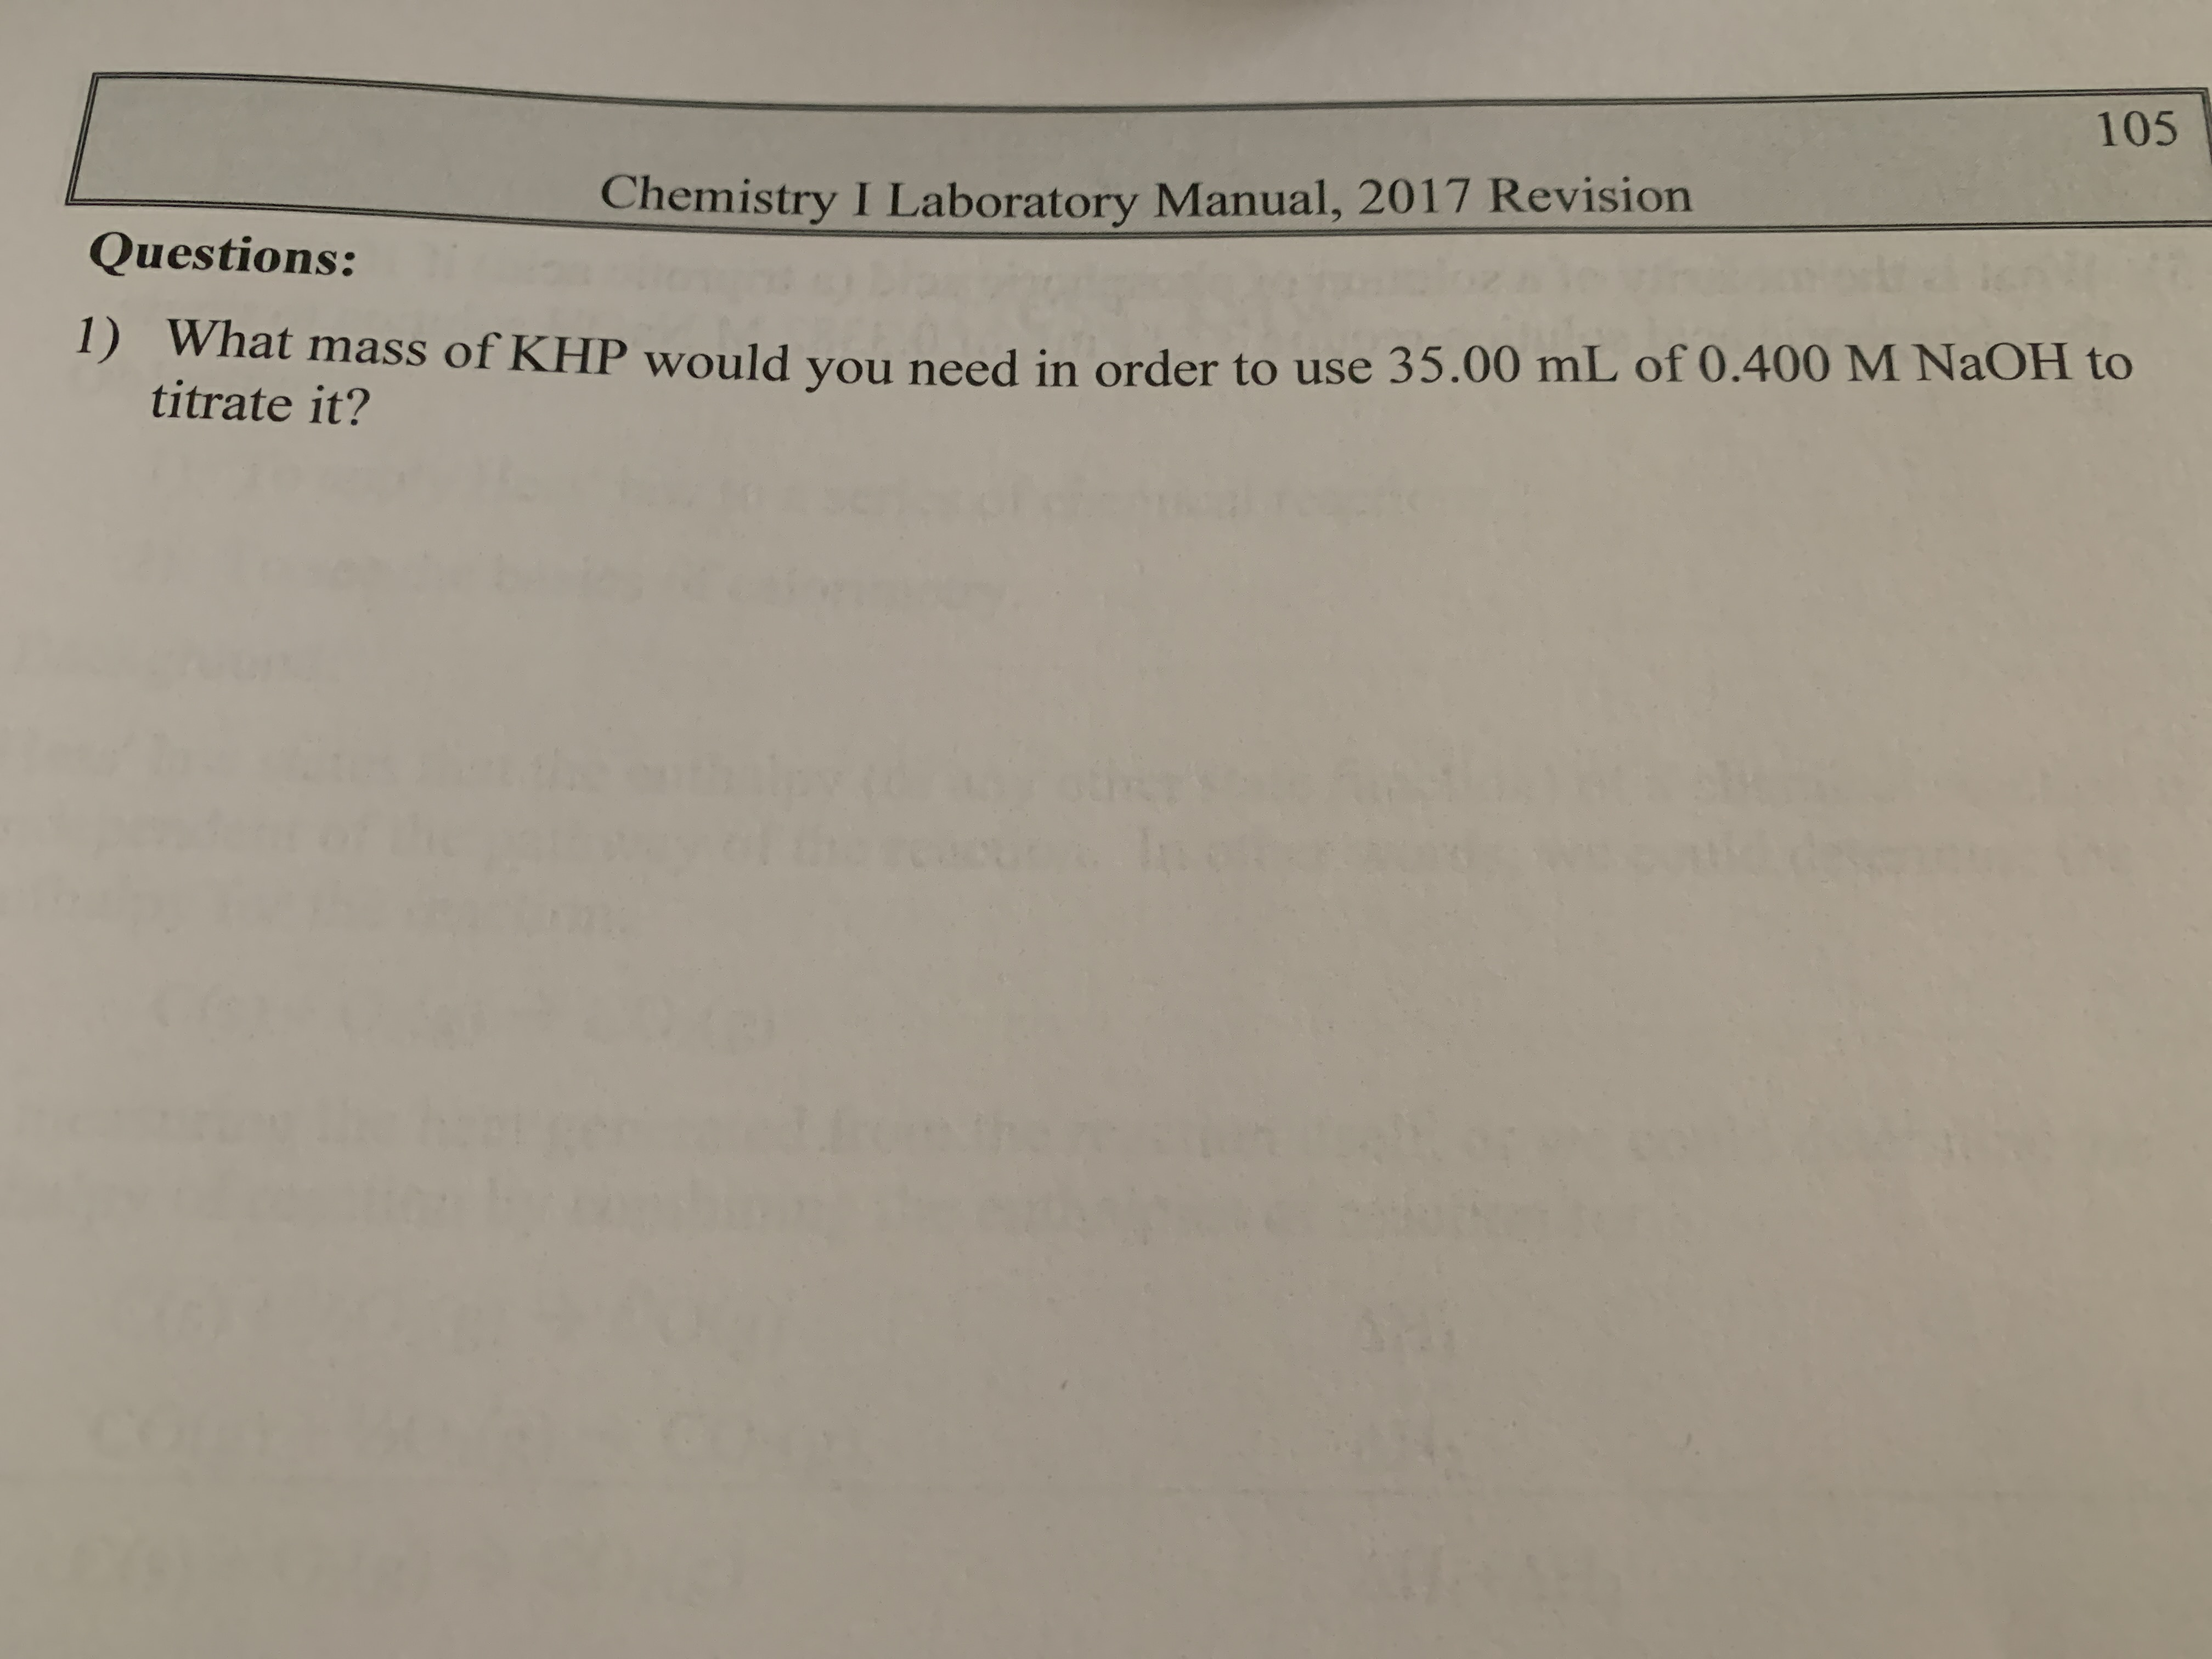 105 Chemistry I Laboratory Manual, 2017 Revision Questions: 1) What mass of KHP would you need in order to use 35.00 mL of 0.400M NAOH to titrate it?